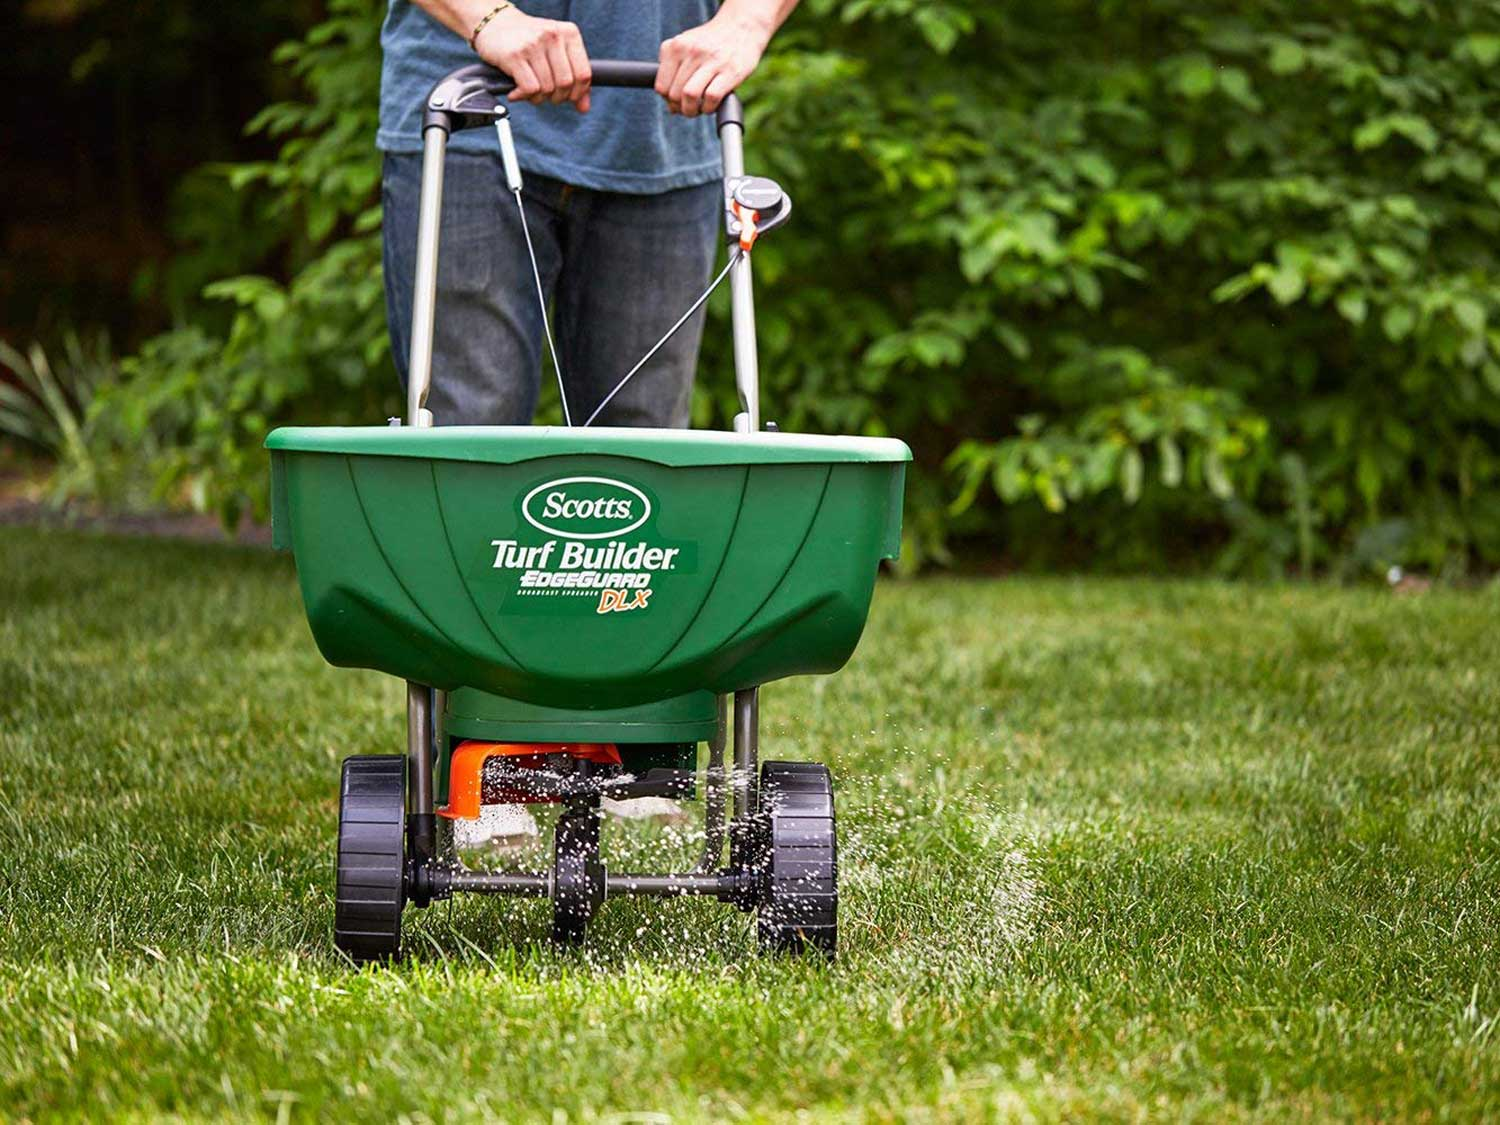 Spreading grass fertilizer or seed on lawn.